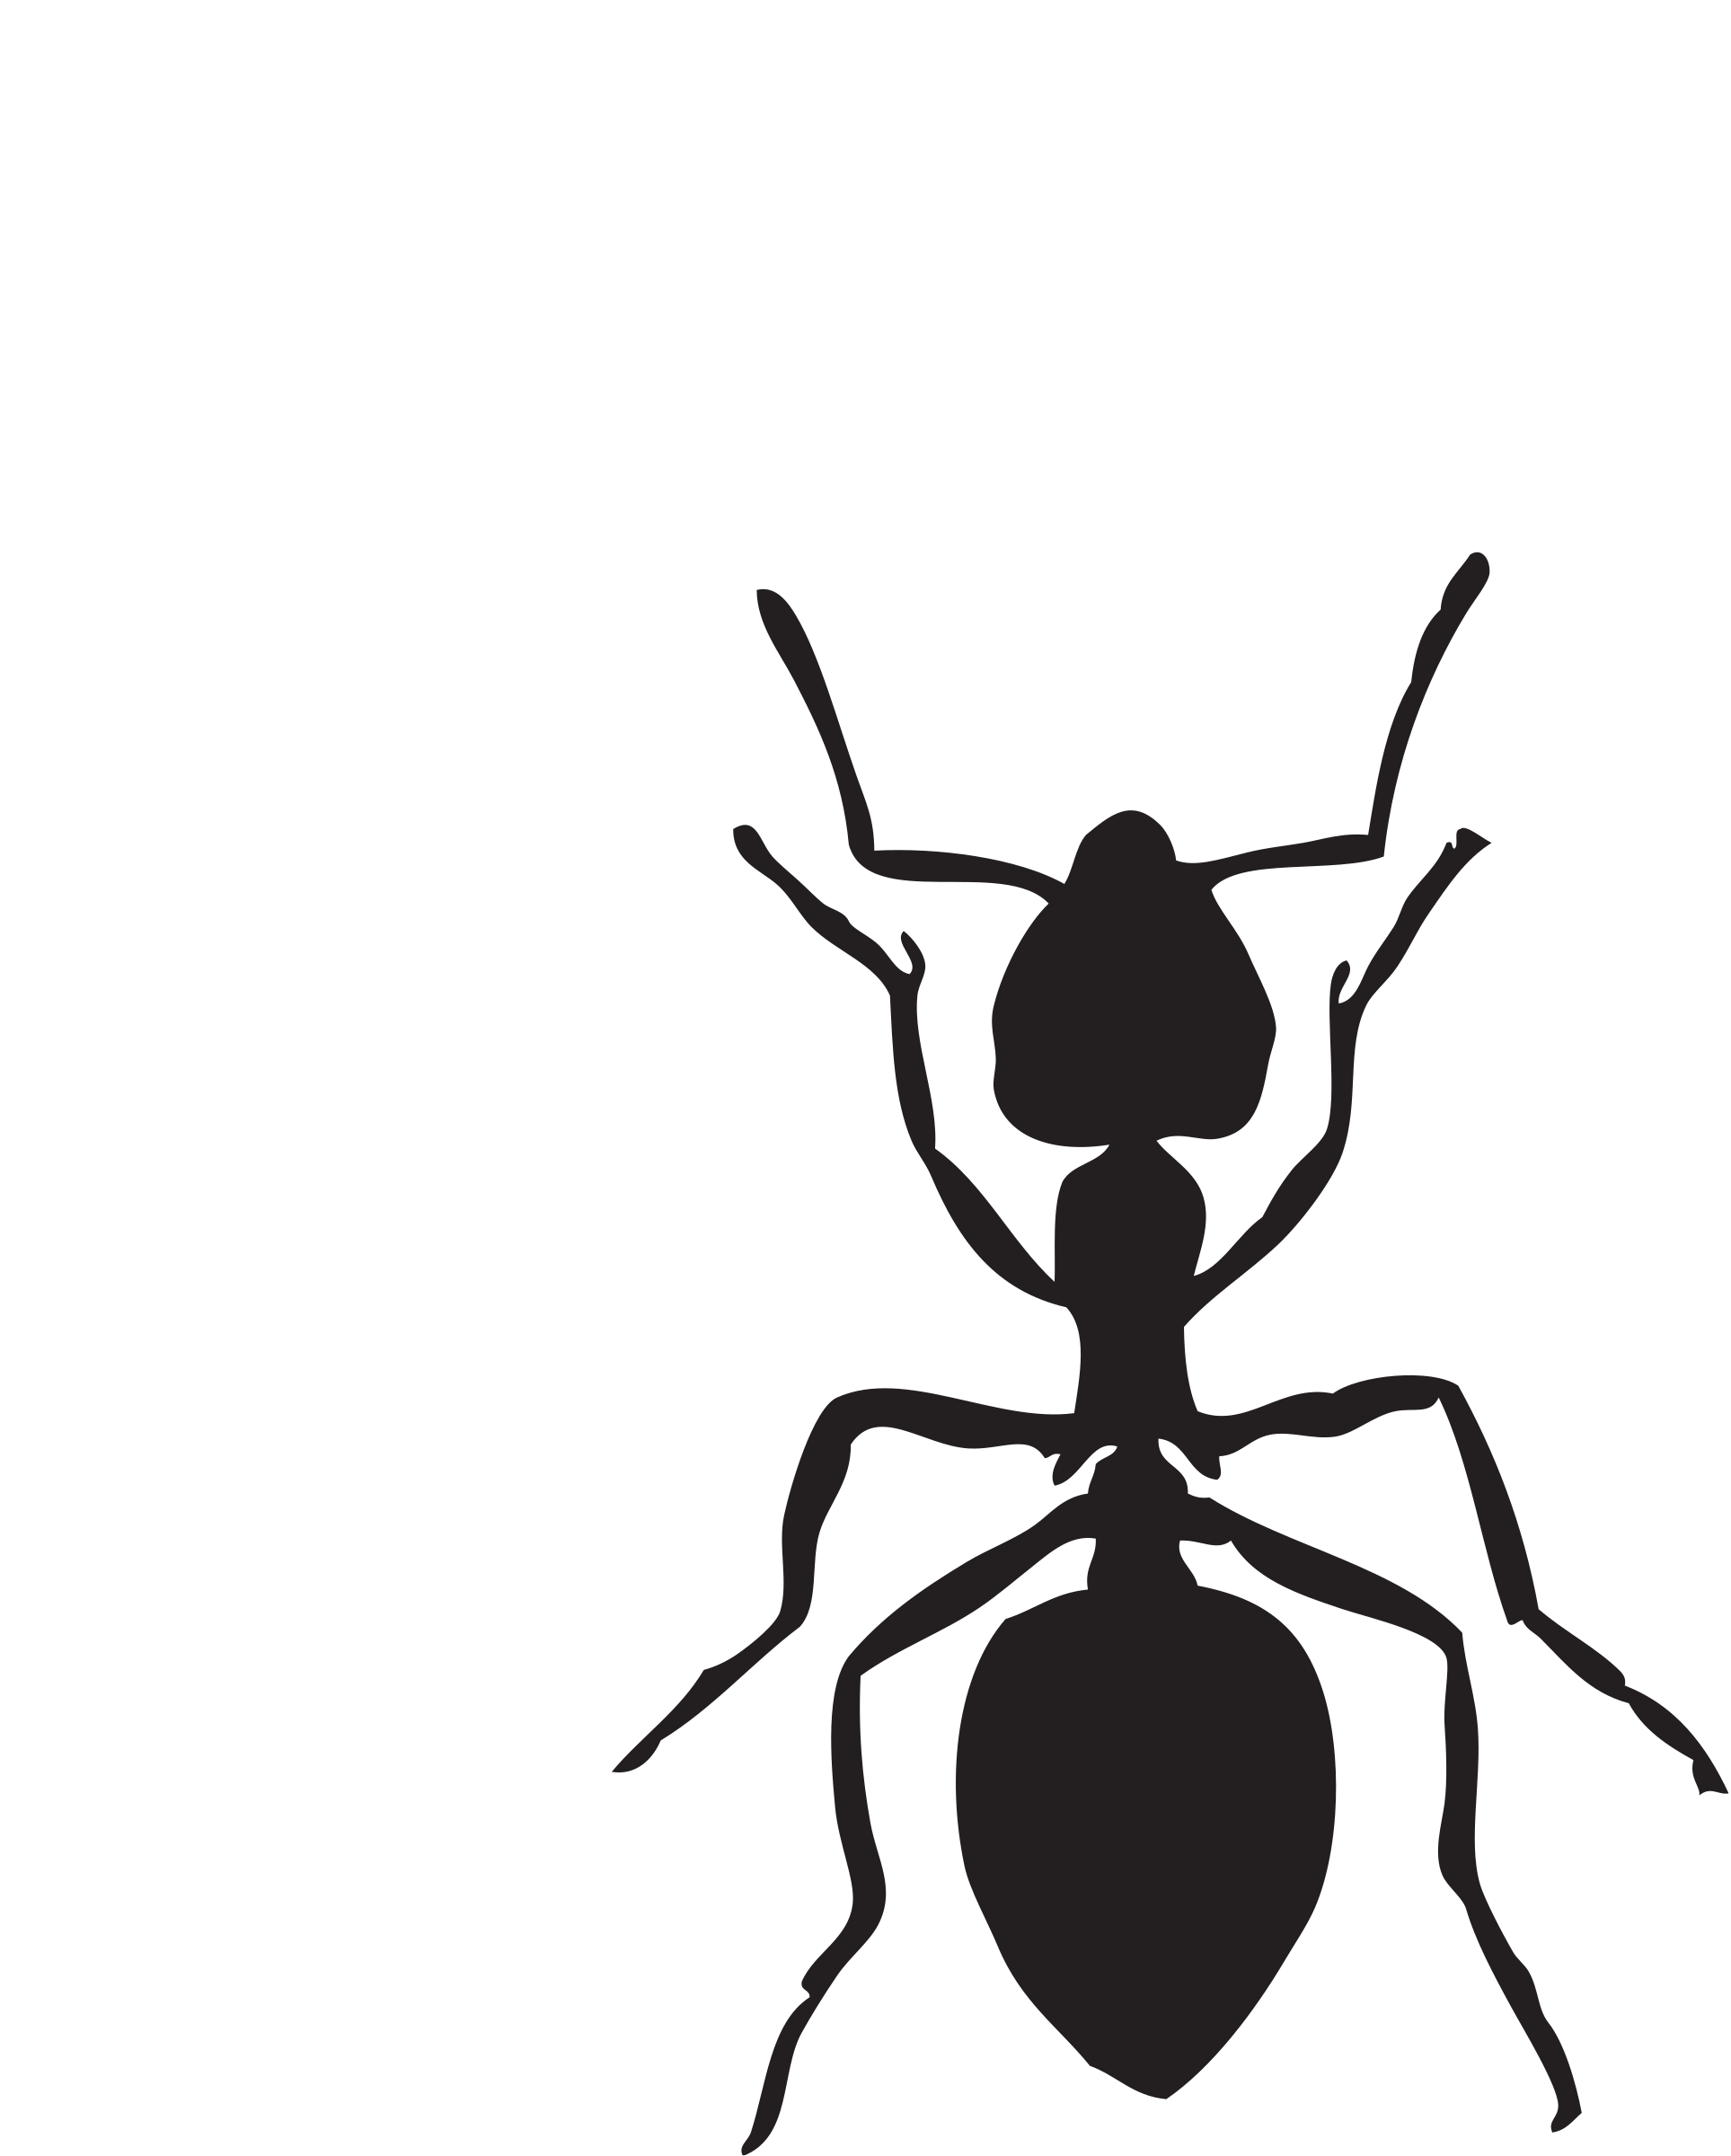 banner freeuse library Acrobat ant big image. Ants clipart black and white